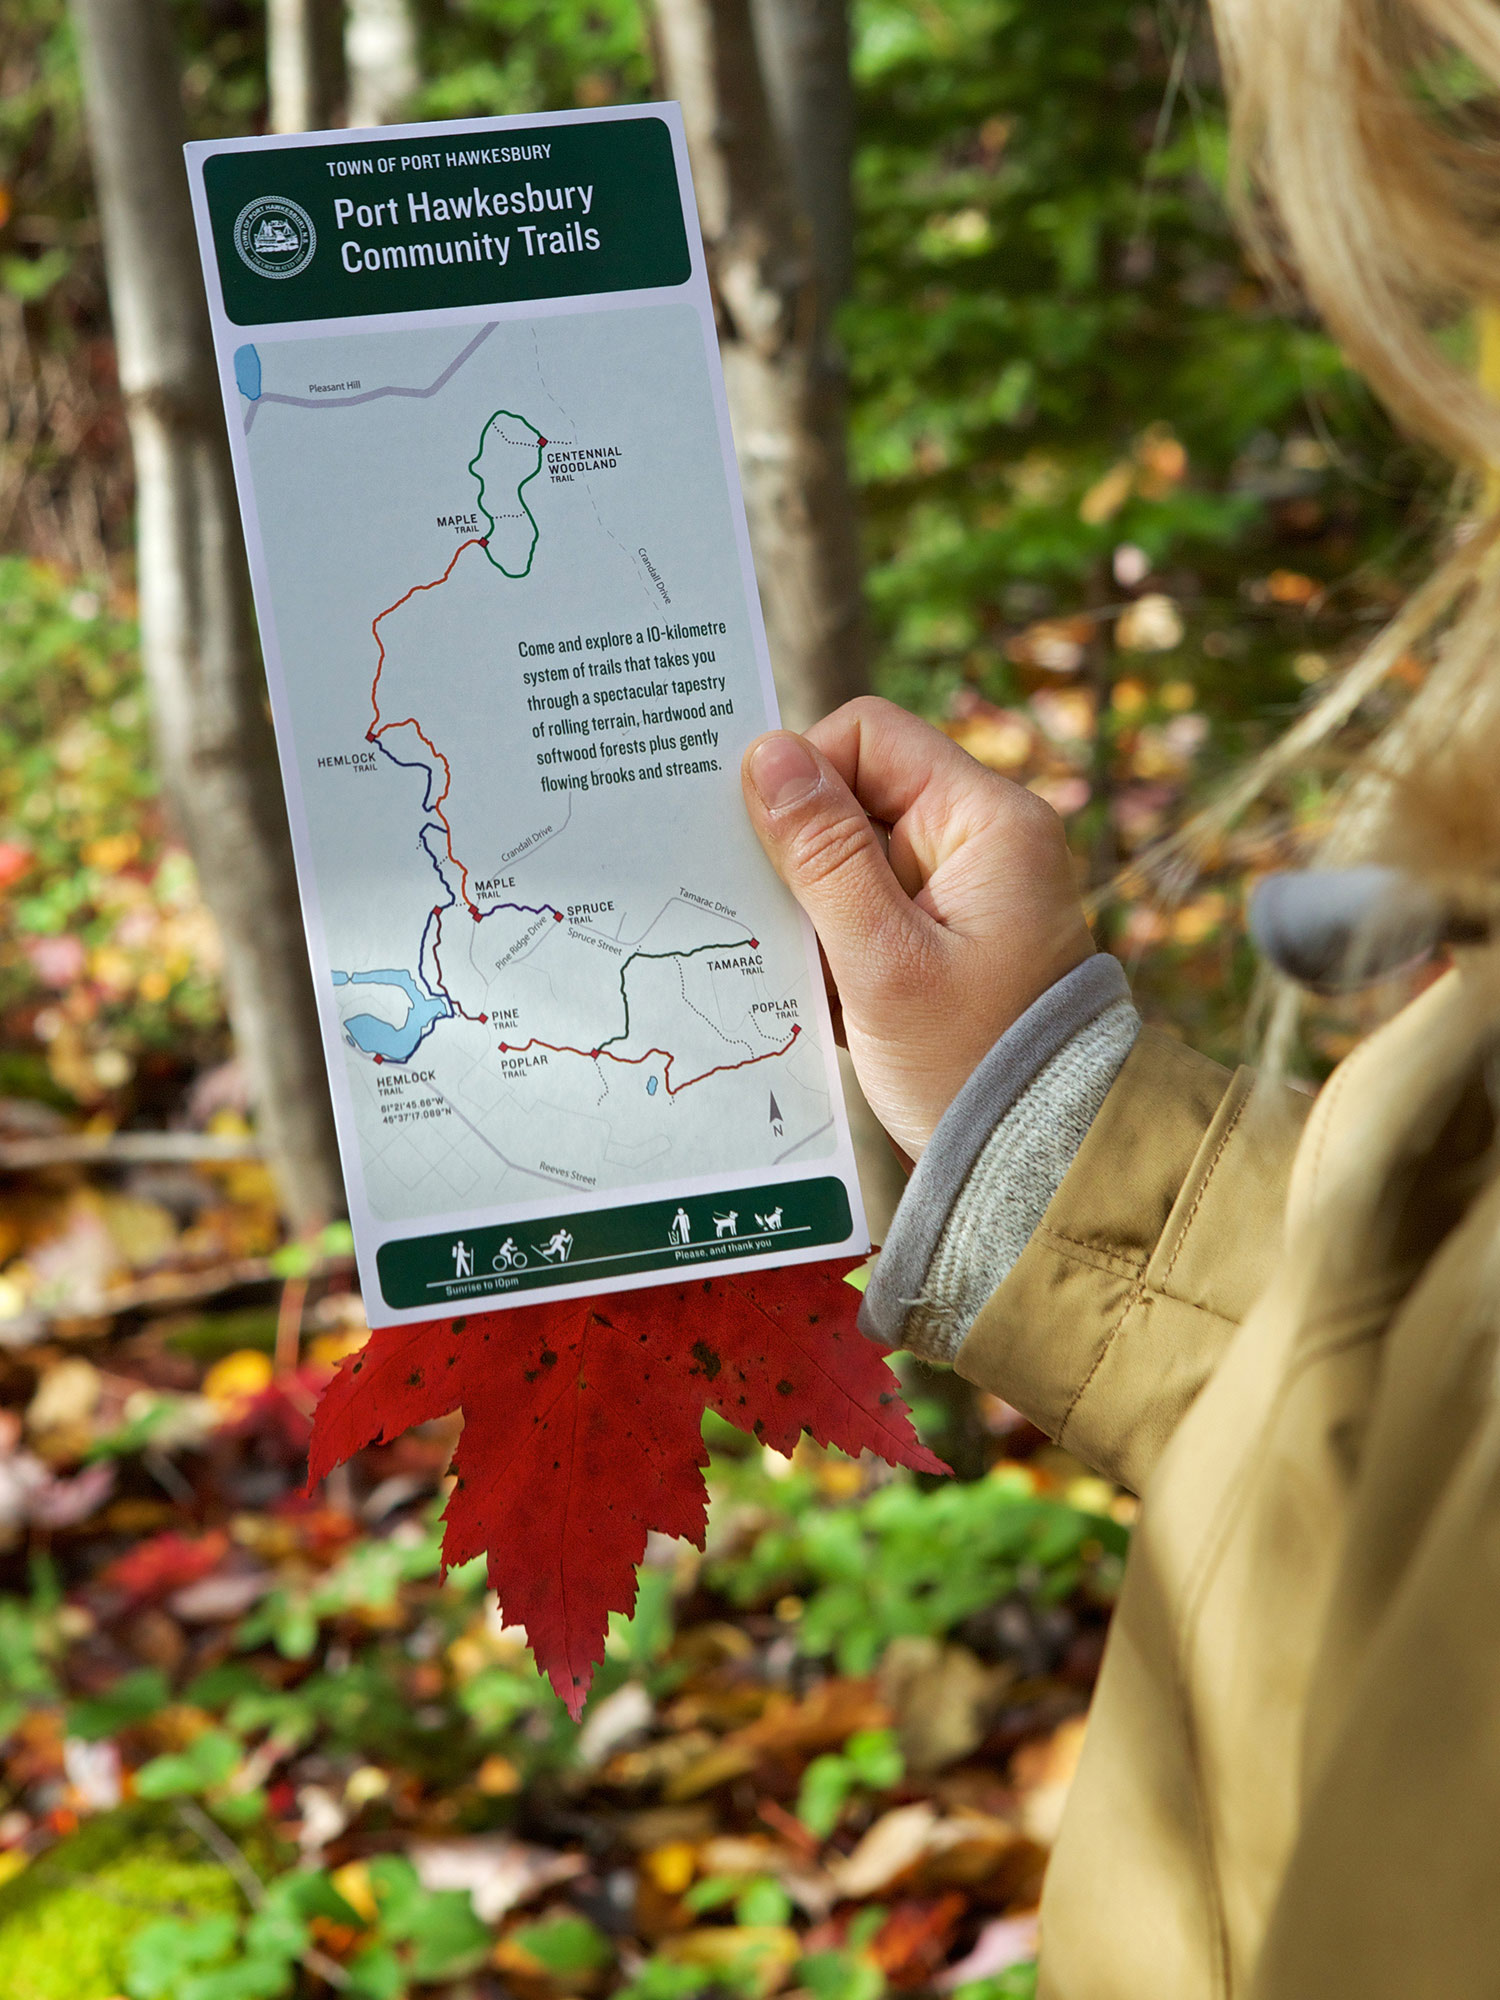 PRINT COLLATERAL Printed rack cards are available at visitor information centres present the network of seven trails, along with trail usage information.